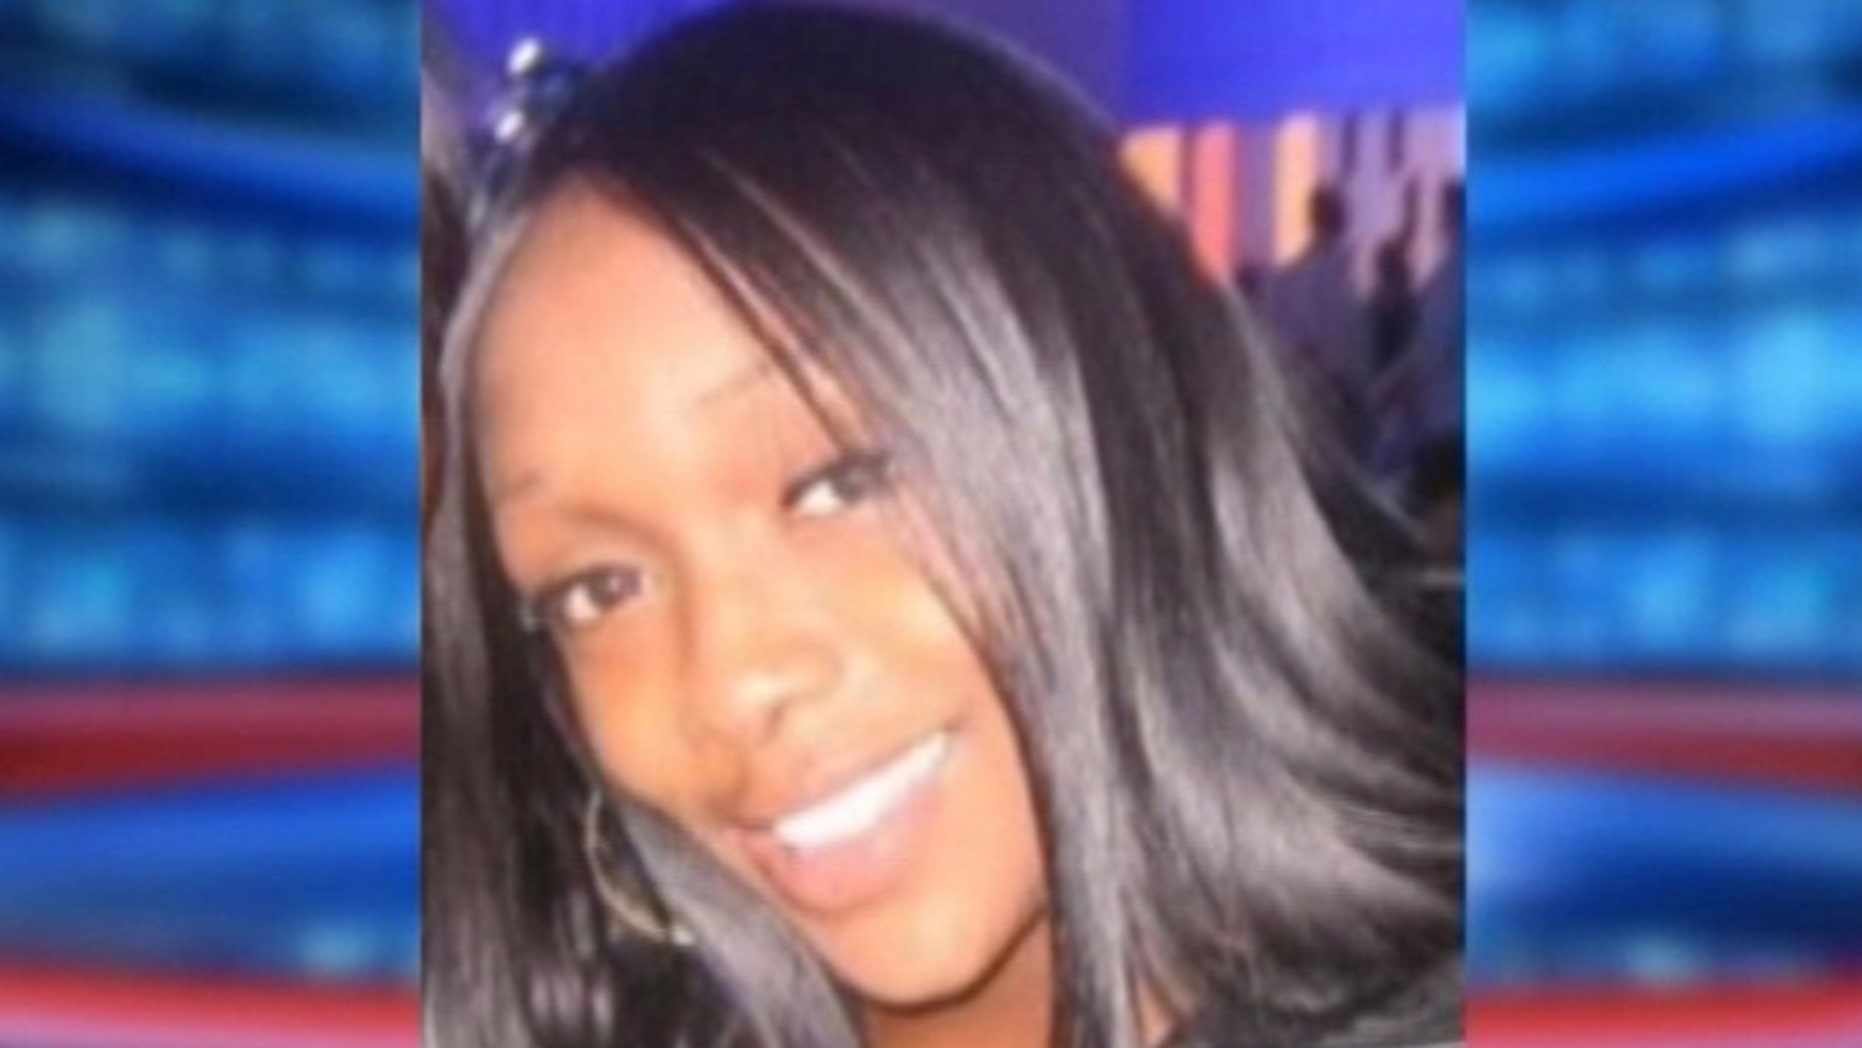 Kalisha Madden, 27, was last seen leaving work Sunday night at the Vegas Strip Club in Detroit, her family said.